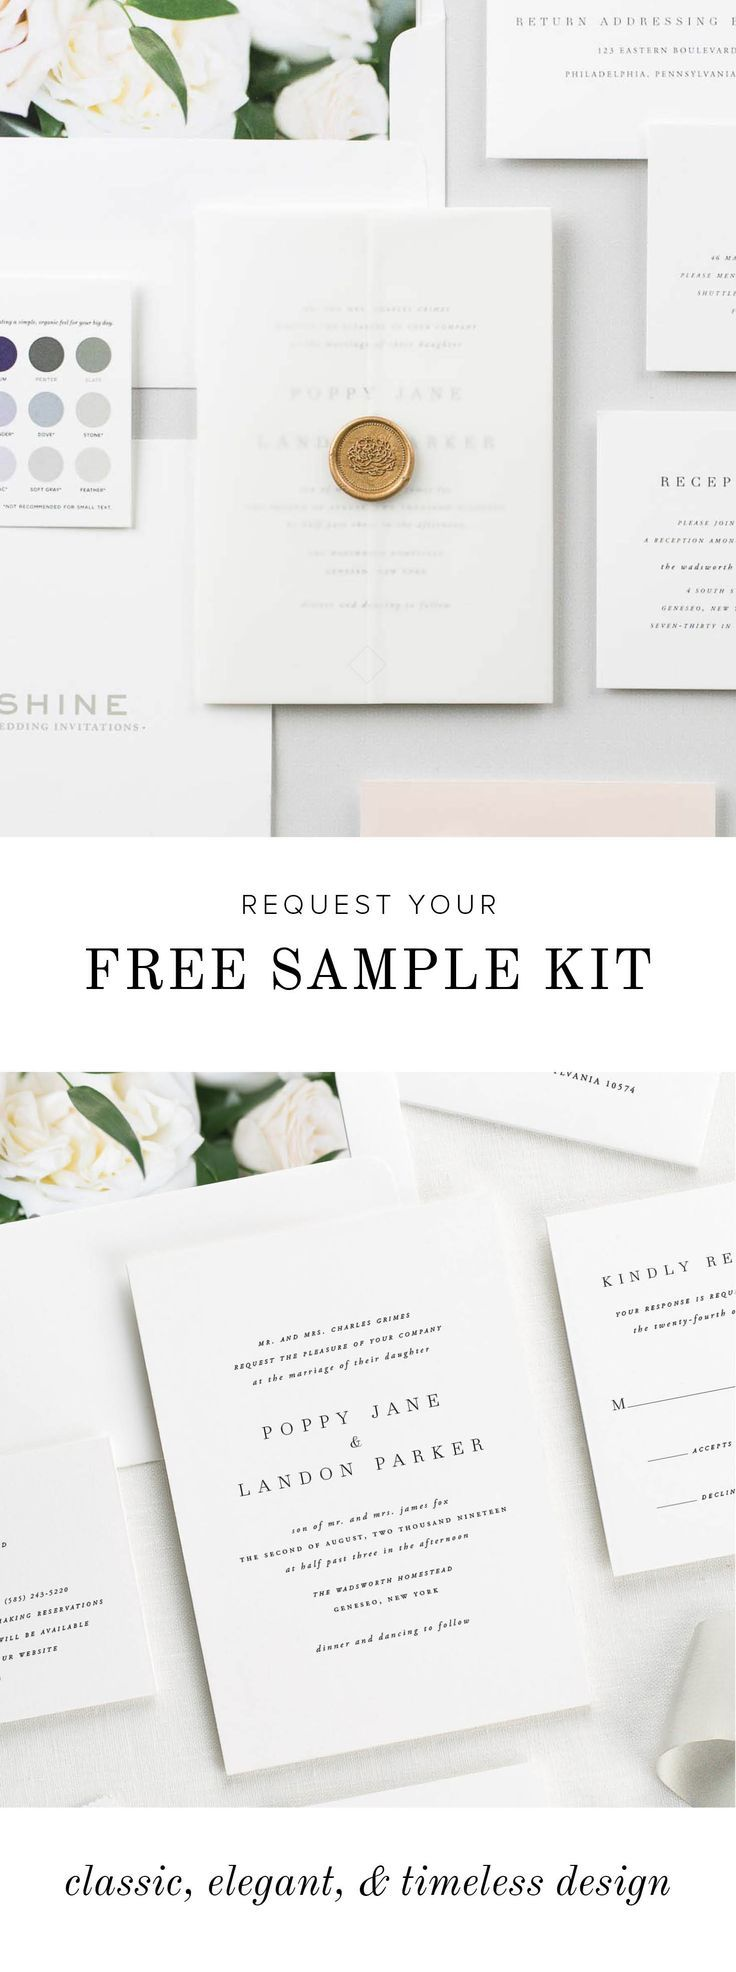 See our paper and colors in person with a free sample kit from Shine ...